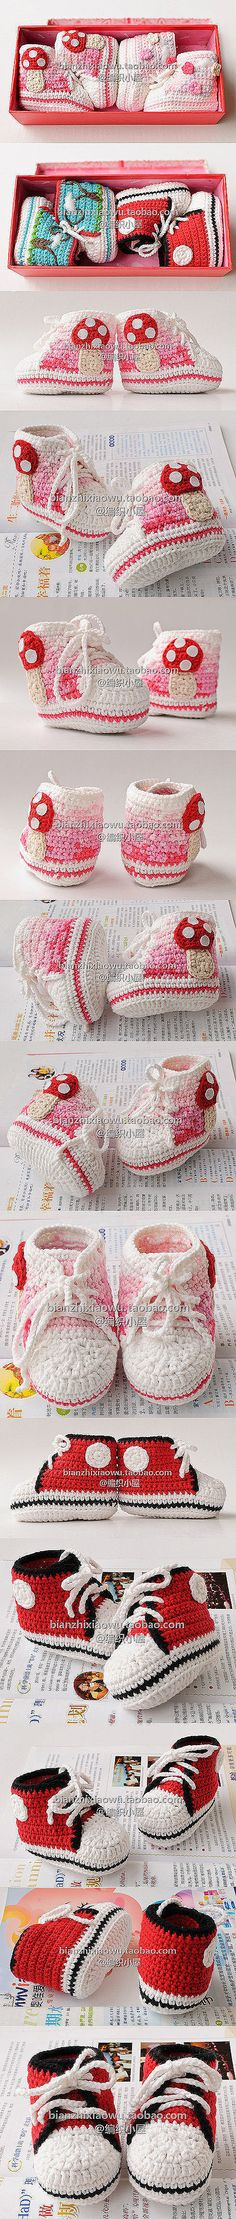 "cute booties inspiration and similar PDF crochet pattern ""free!"" ** FREE PATTERN AS AT 01.01.16 **"